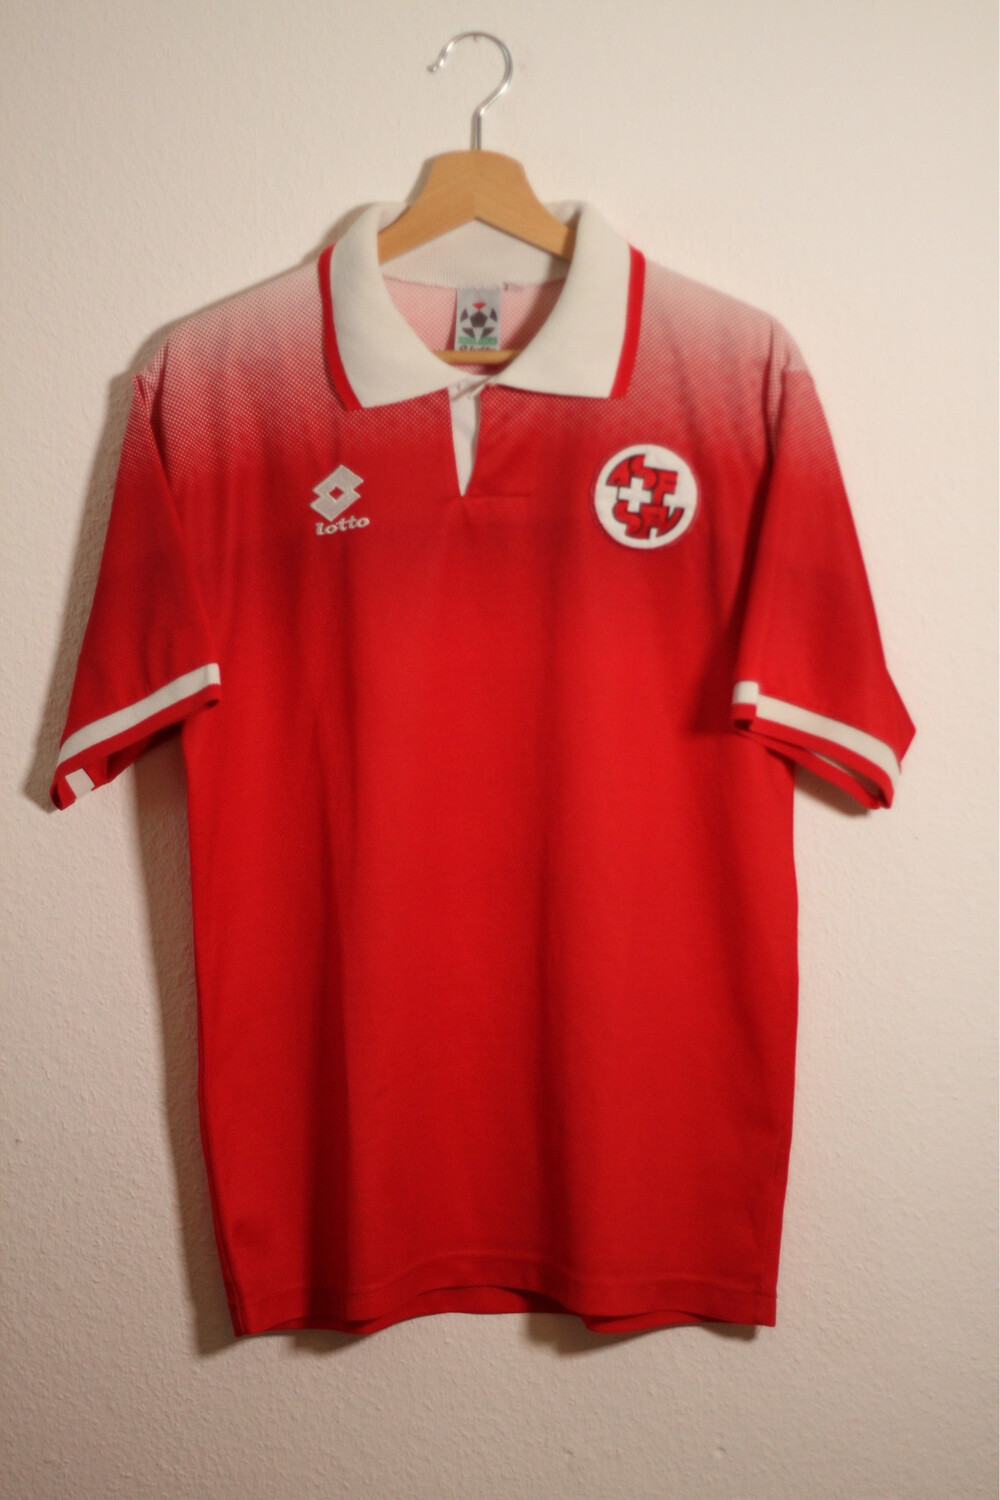 Suisse 1996/98 Home